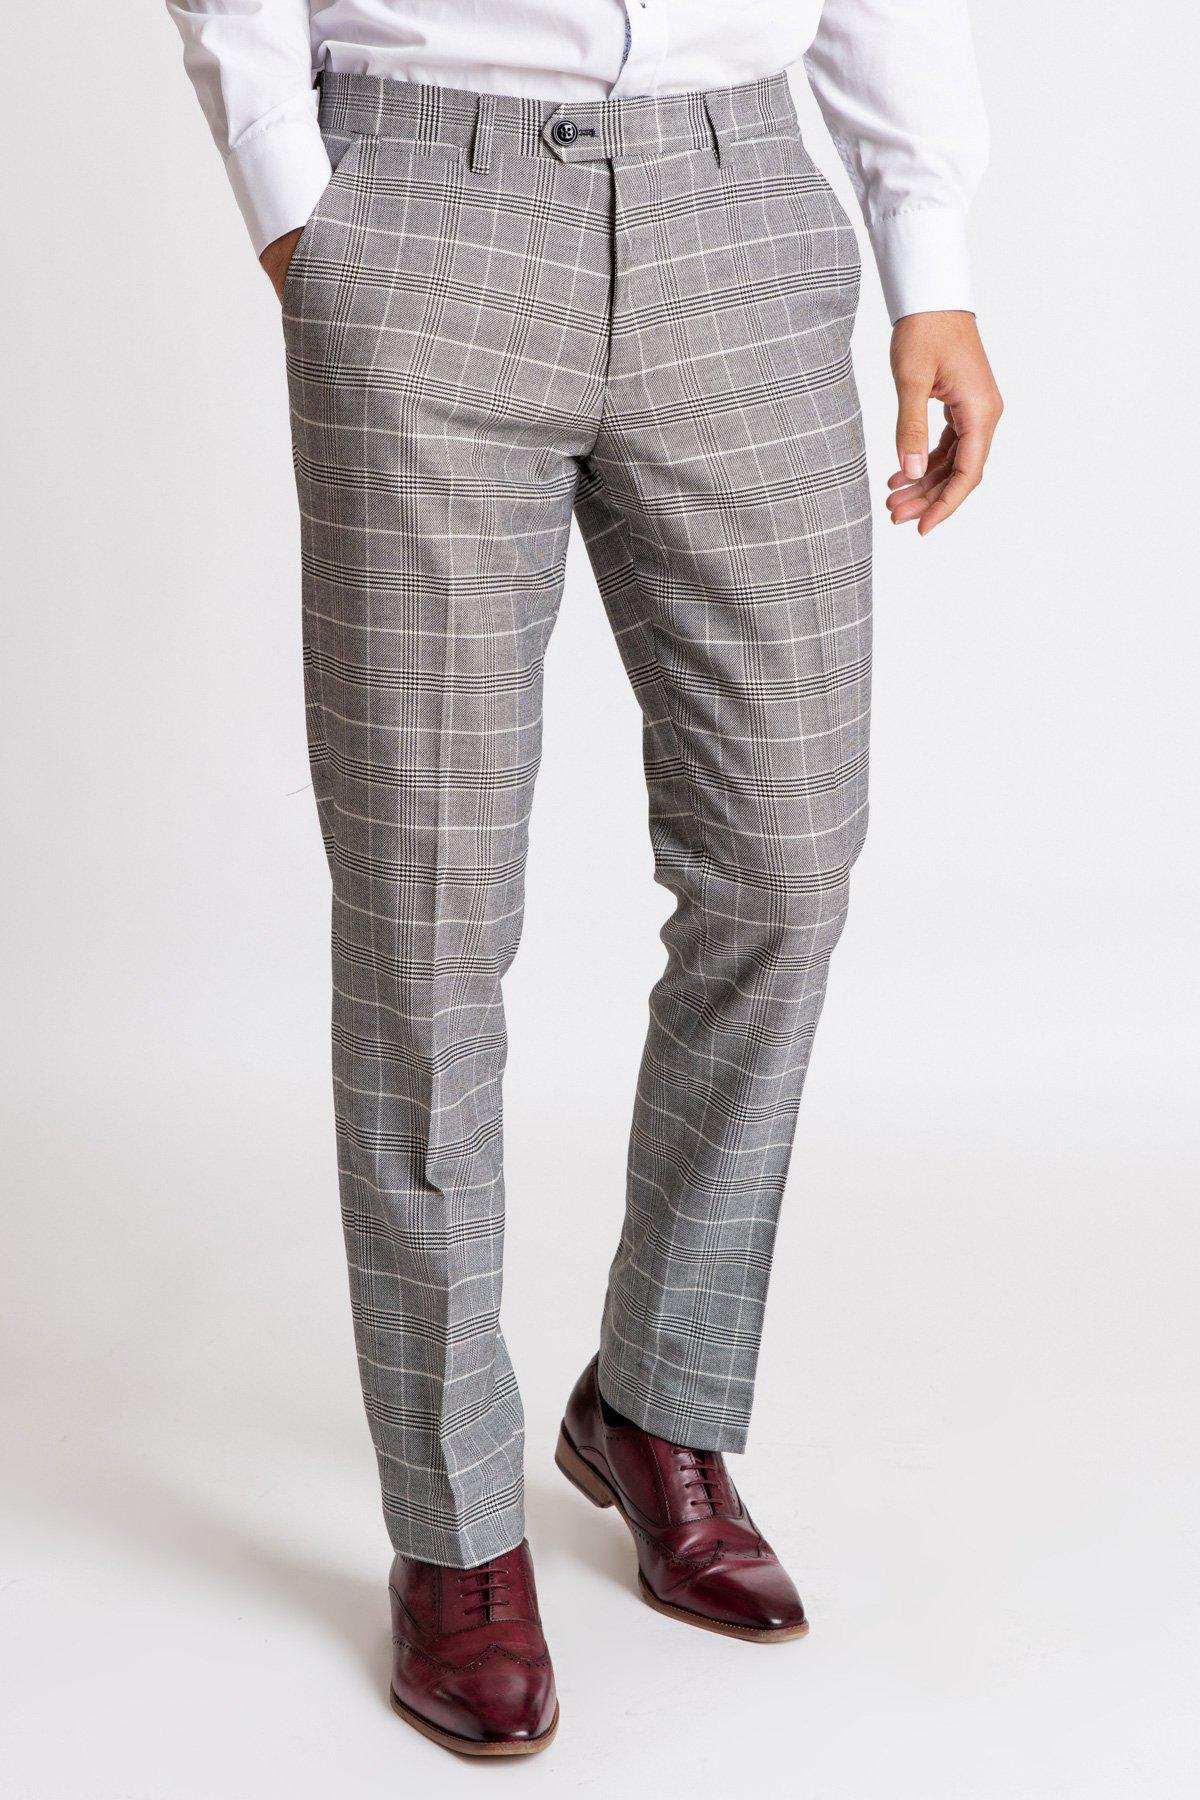 ROSS - Grey Check Trousers